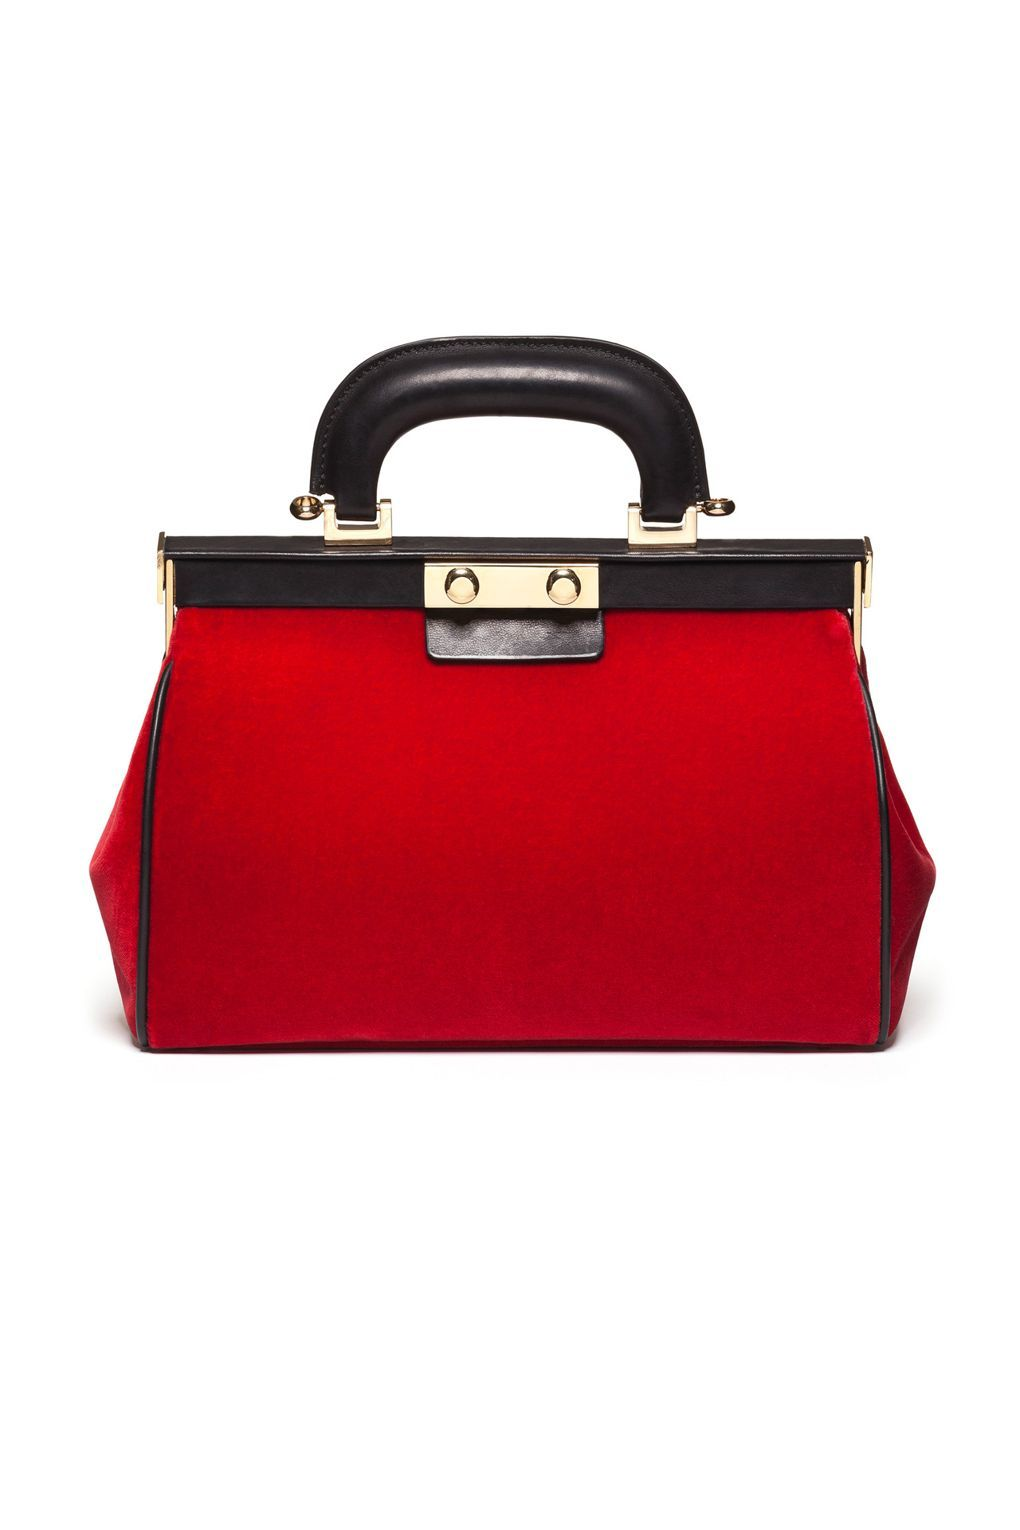 This red velvet doctor s bag can only be full of treats. £865 99b958e8d036a